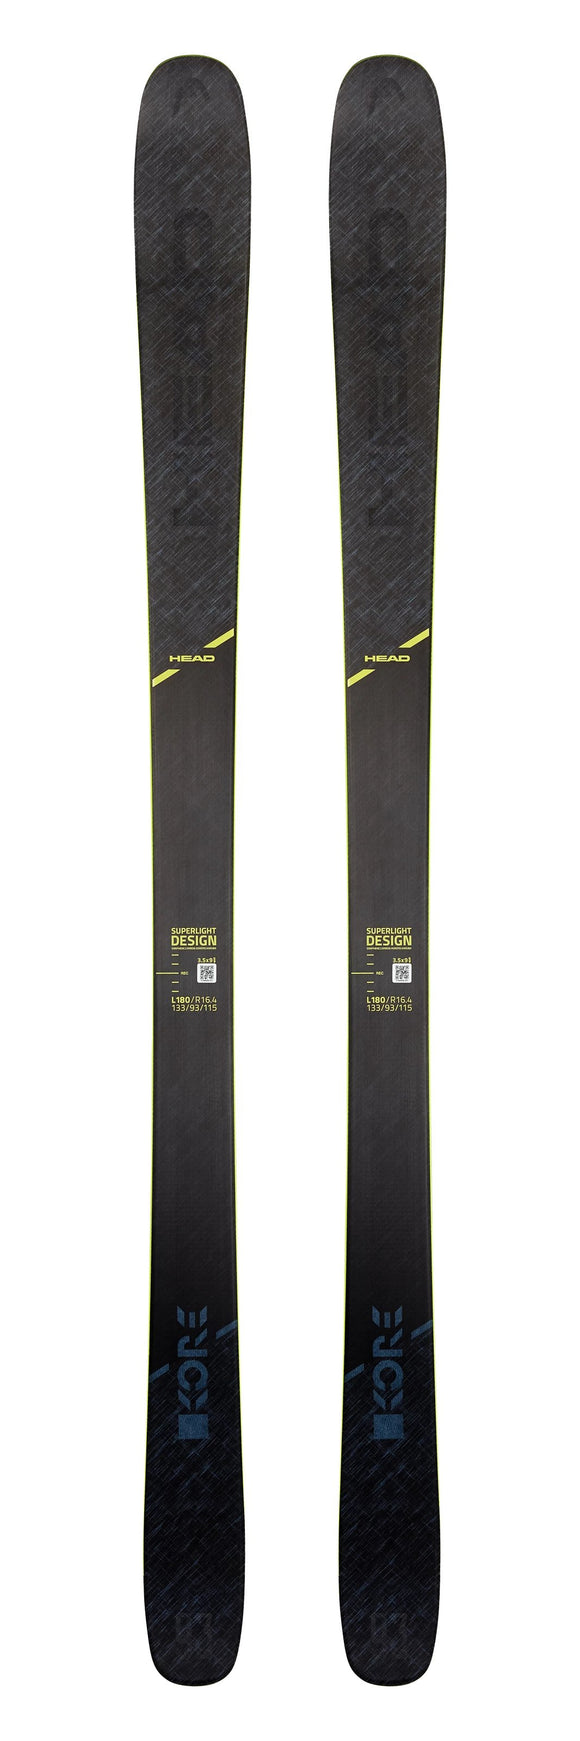 2020 Head Kore 93 snow skis - ProSkiGuy your Hometown Ski Shop on the web